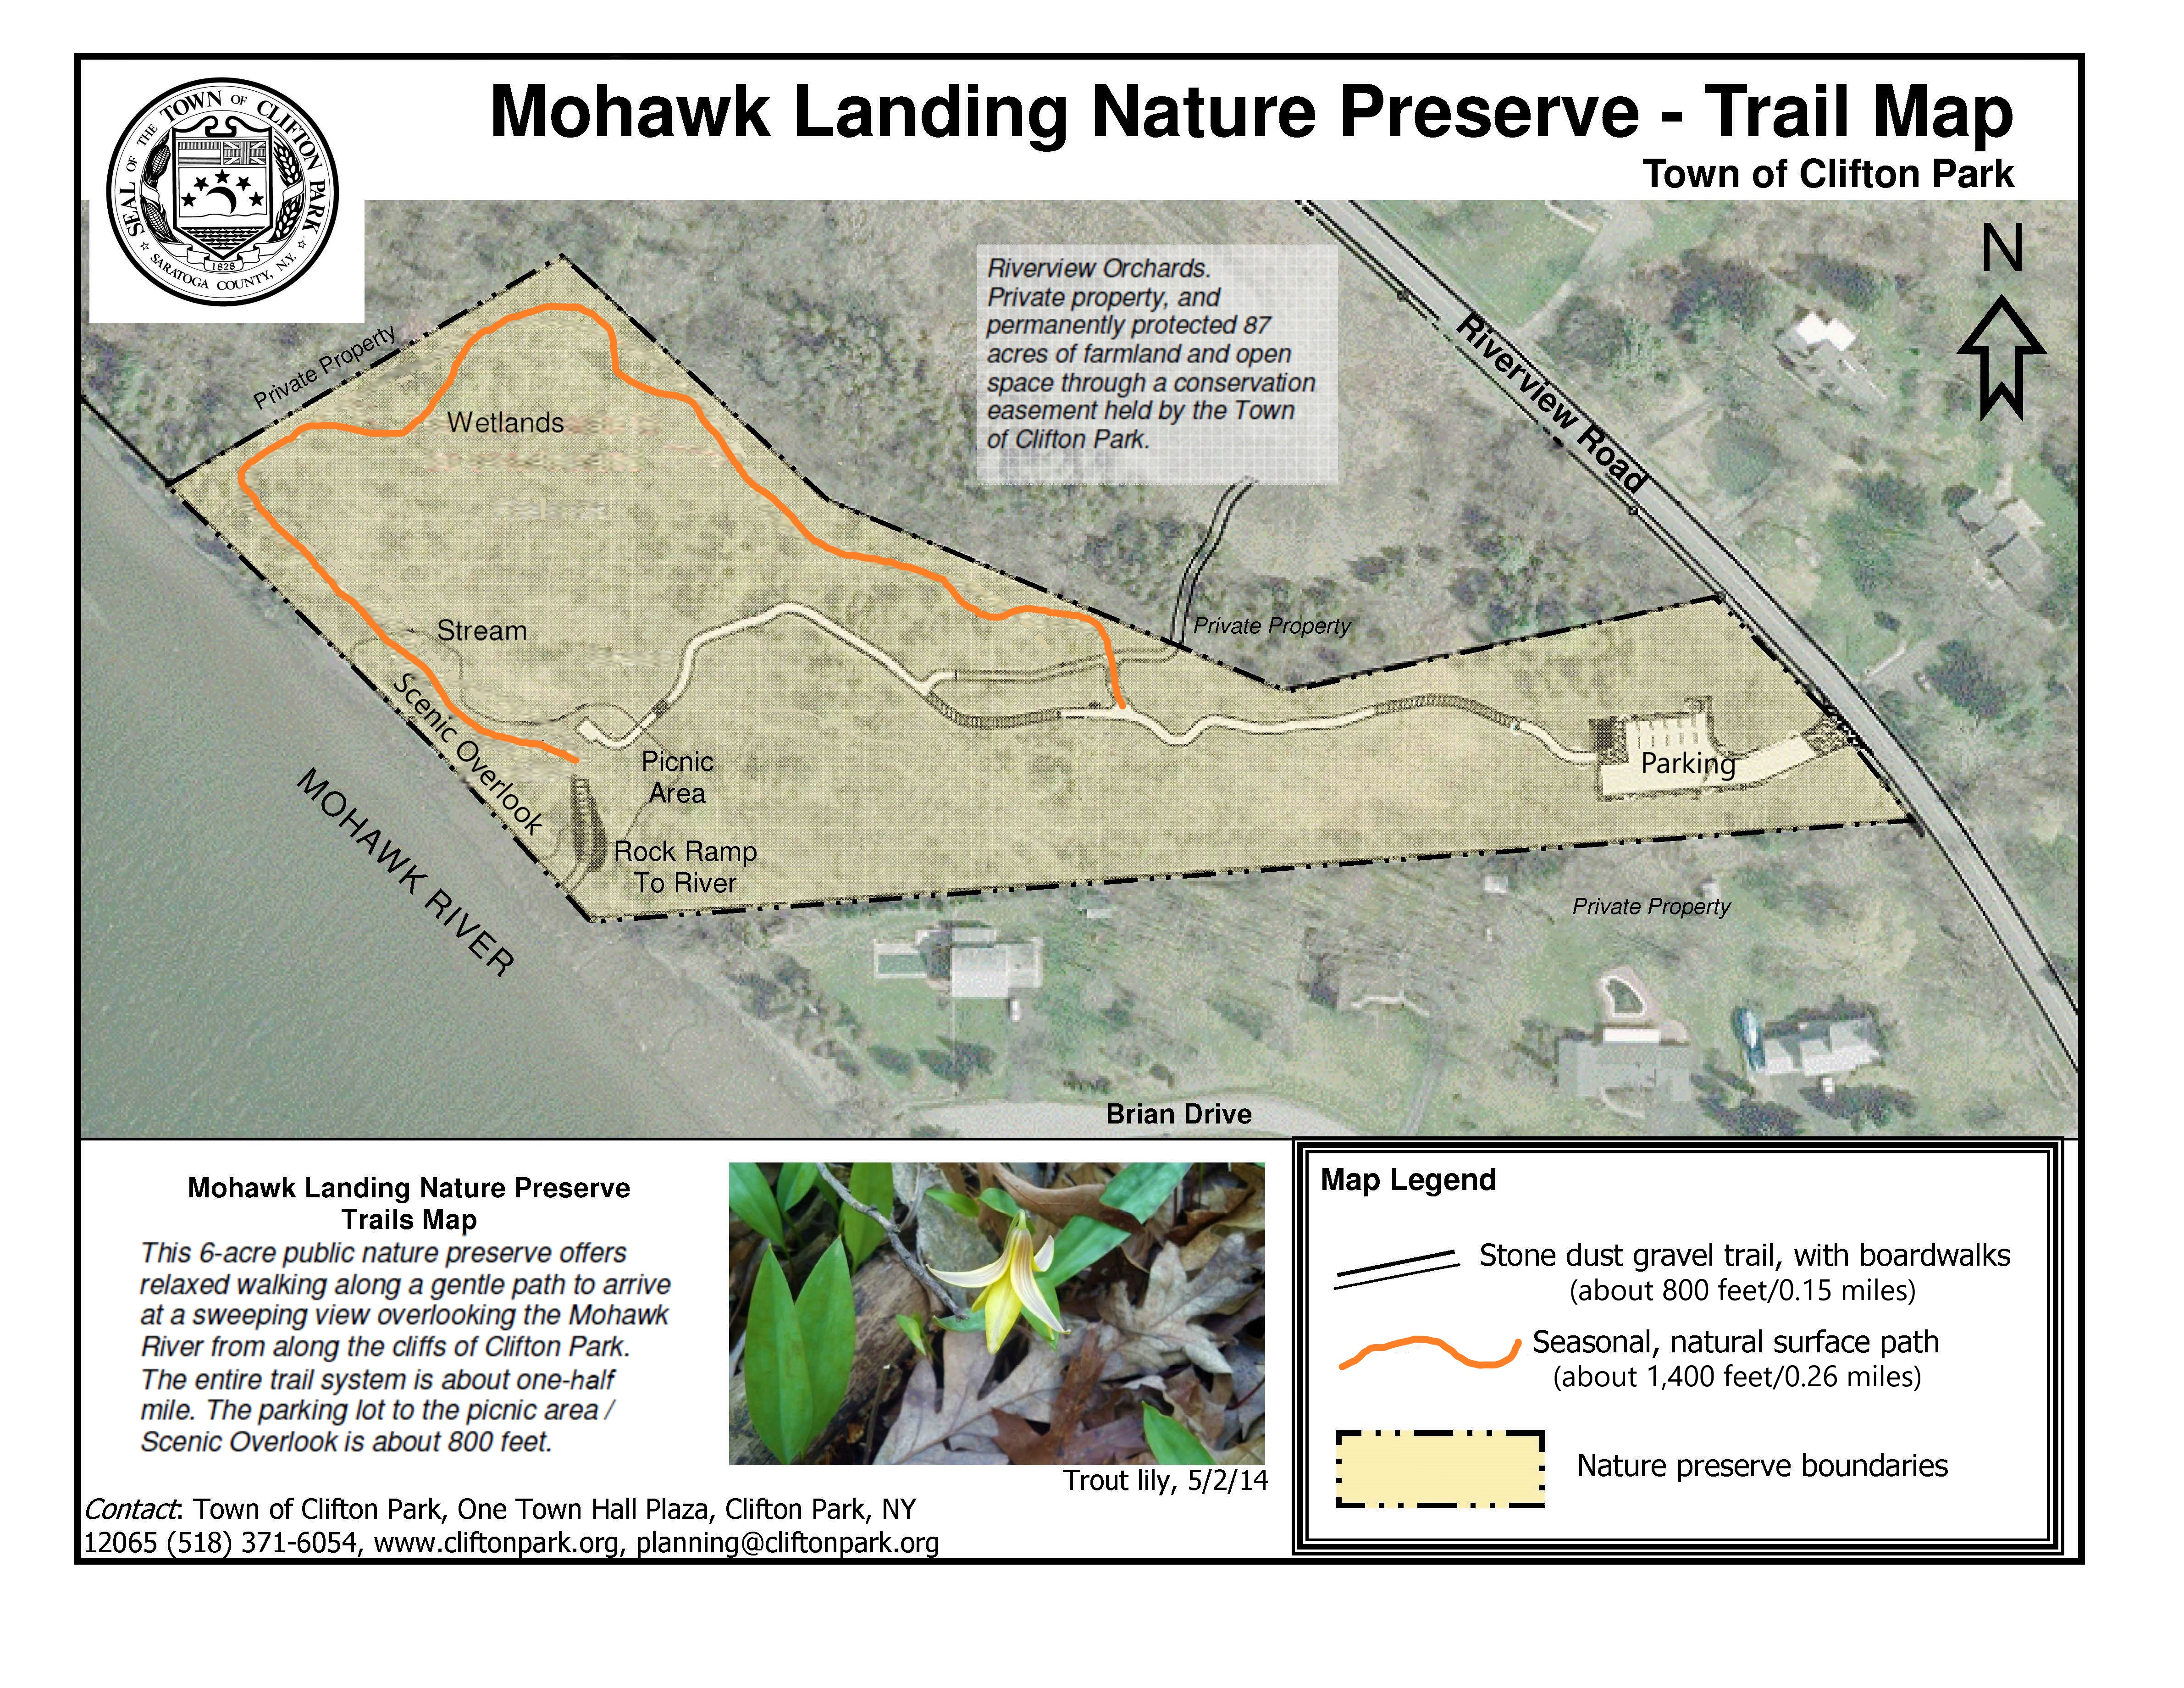 2020 Mohawk Landing Nature Preserve Updated Map Tyler DAngelo 2020 09 14